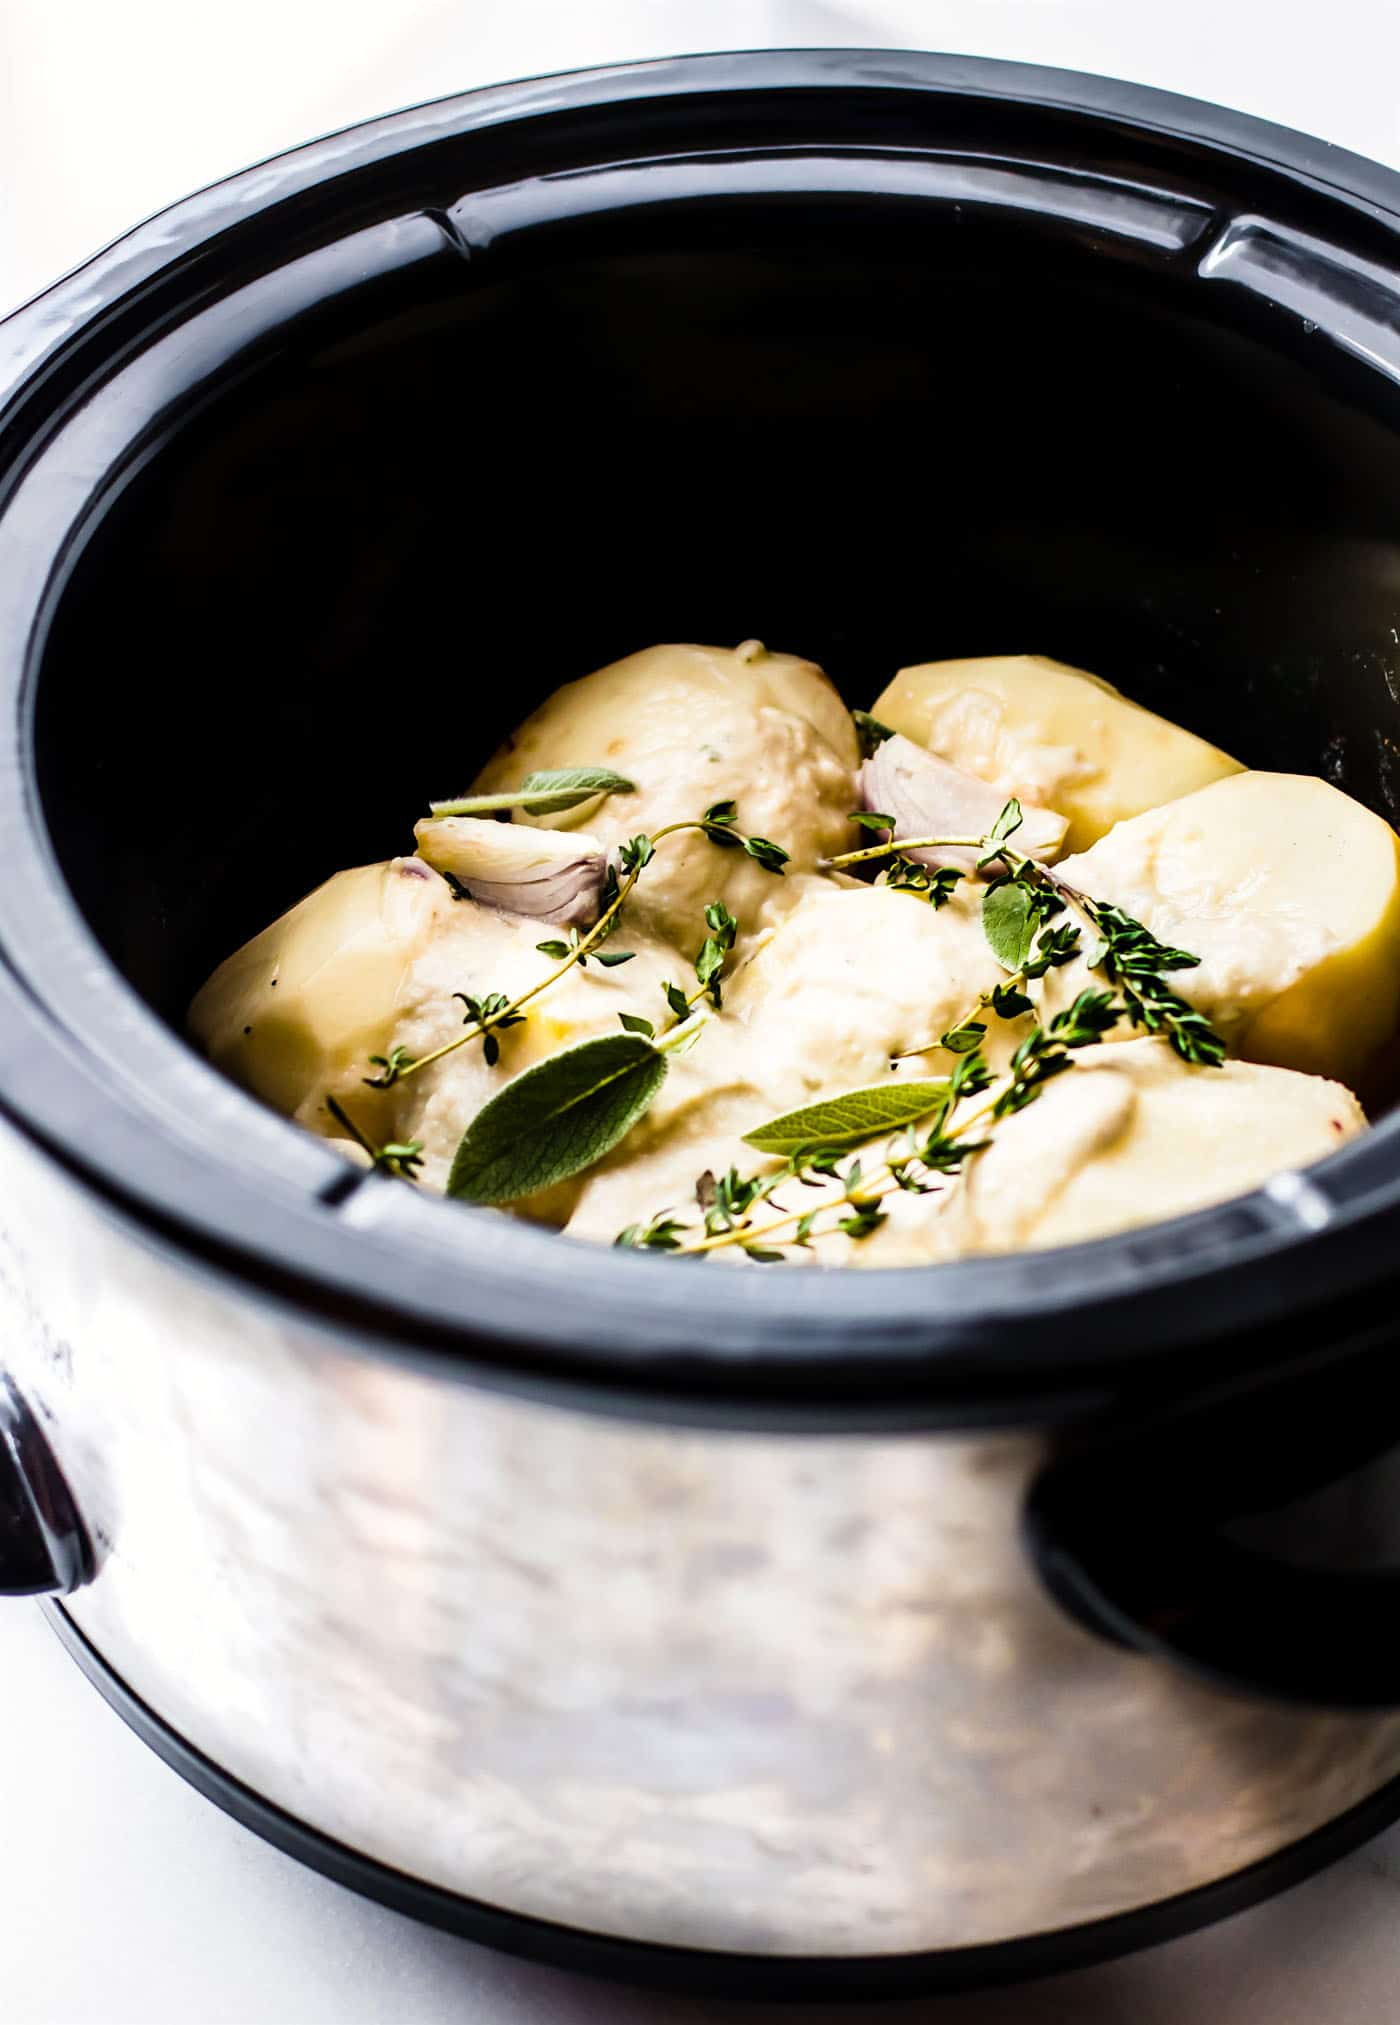 Slow cooker mashed potatoes with a creamy white bean and herb puree! These Vegan slow cooker mashed potatoes are so buttery and delicious, even without the butter! A simple, yet healthy, white bean sage puree is cooked right in to give it extra flavor and texture!. A vegan side dish that everyone will enjoy!